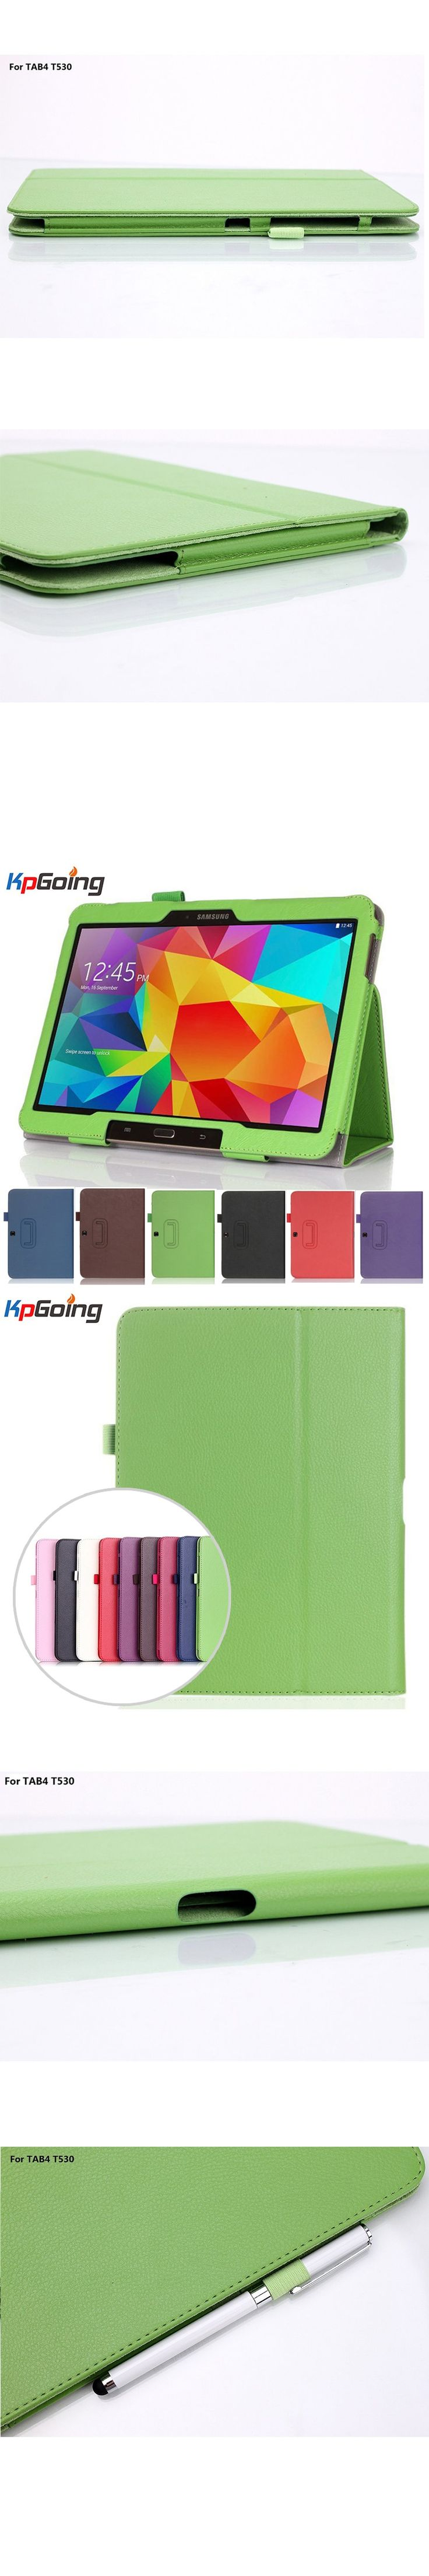 Flip Case for Samsung Galaxy Tab 4 10.1 T530/T531/T535,Folio PU Leather Tablet Stand PC Case Cover for Samsung Galaxy Tab 4 10.1